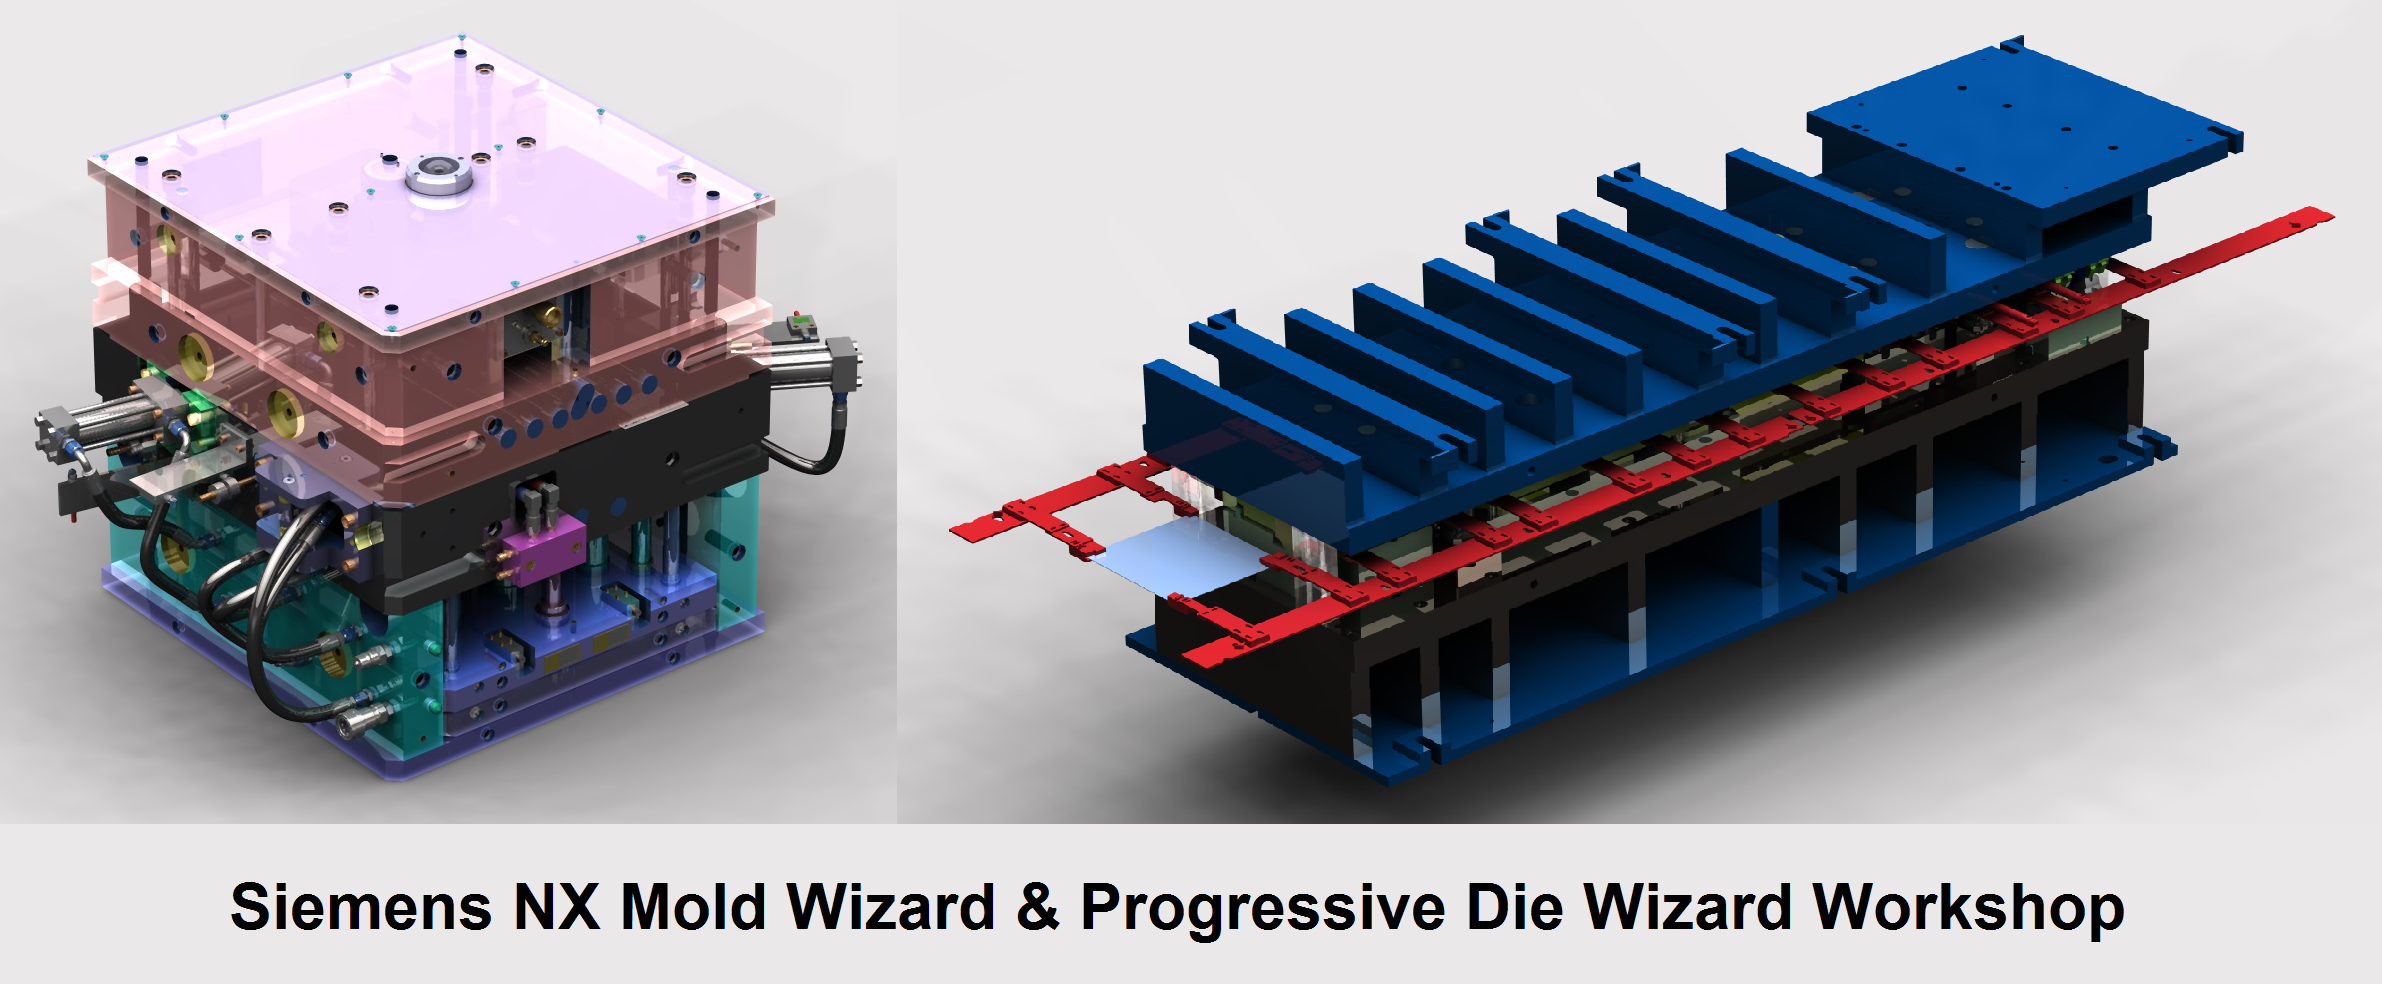 Siemens NX Mold Wizard & Die Wizard Workshop (NX MW/DW) 2019